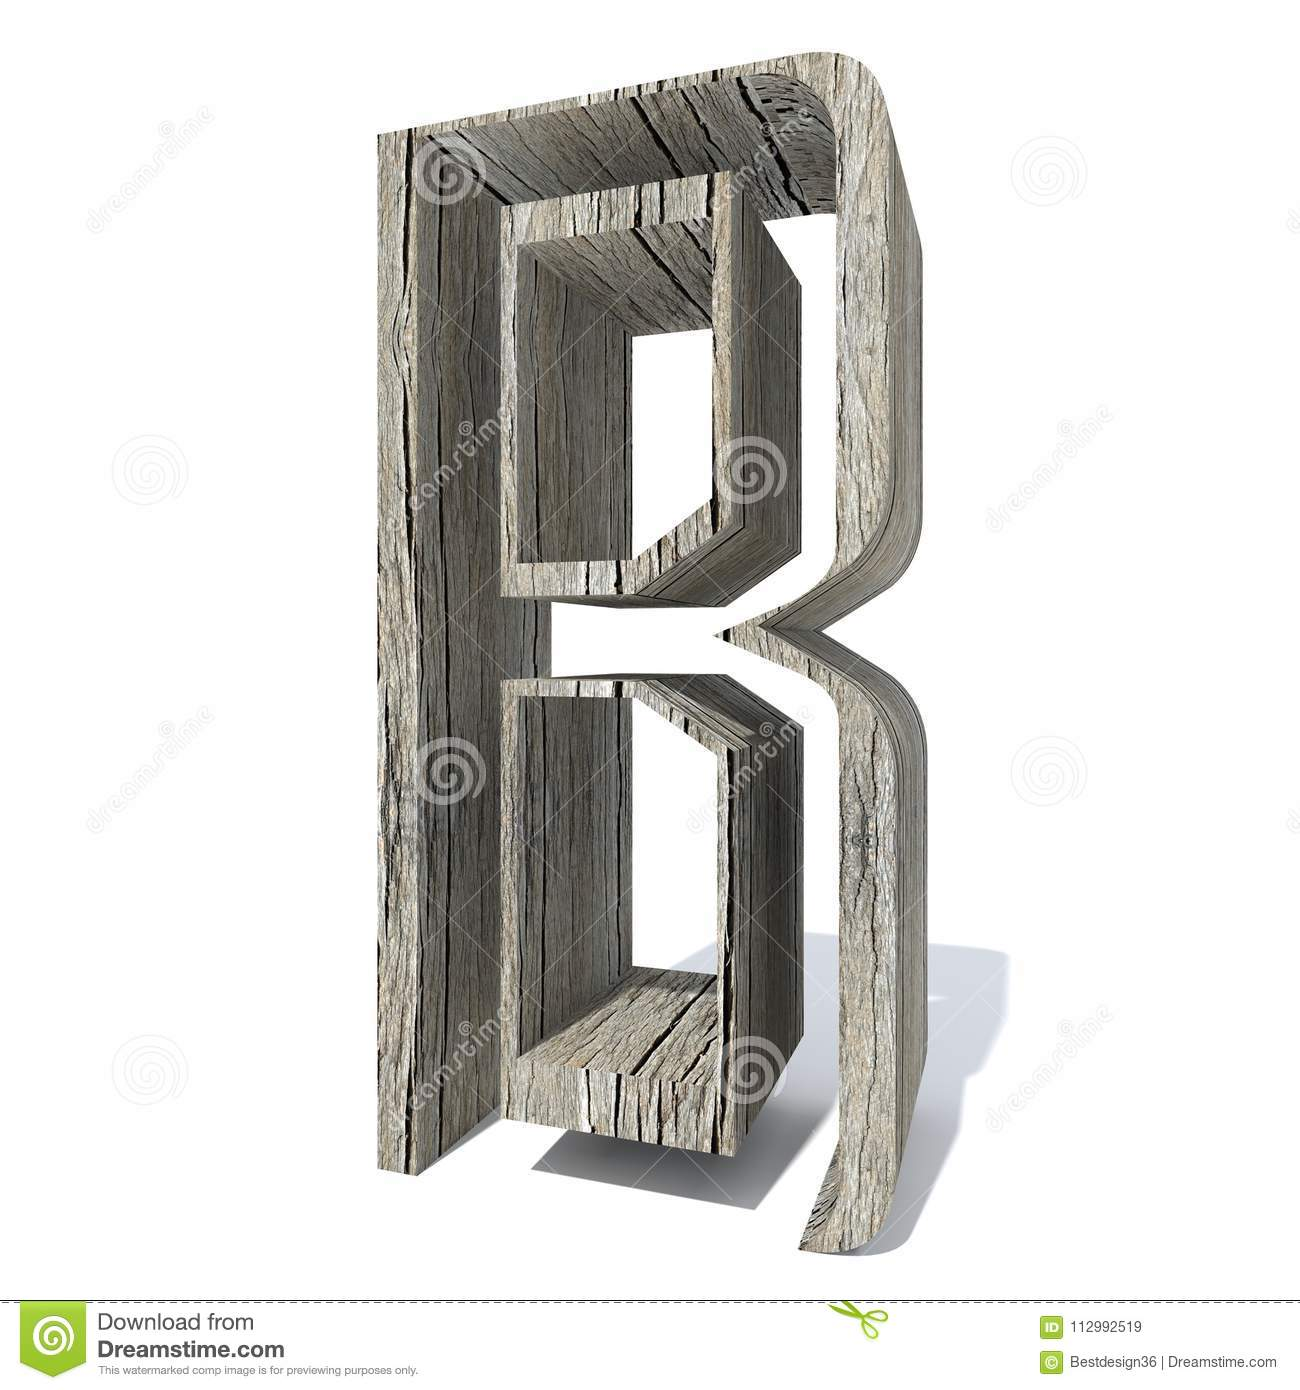 Wooden brown font or type, timber or lumber industry